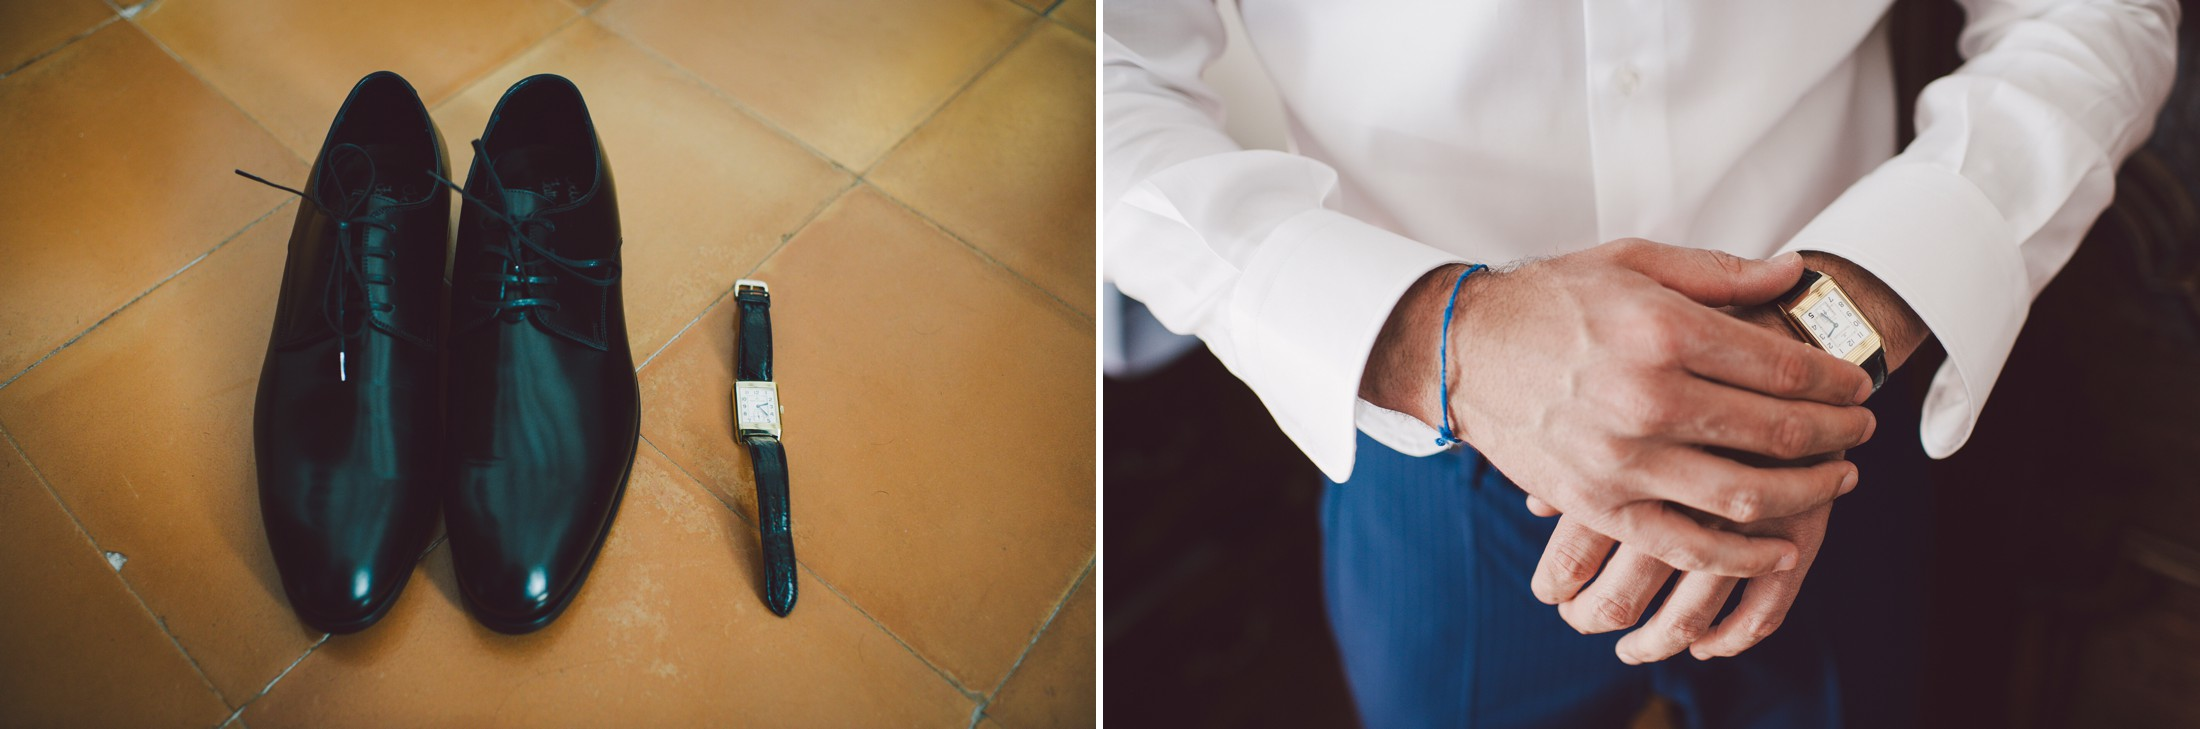 collage wedding details groom's watch and shoes